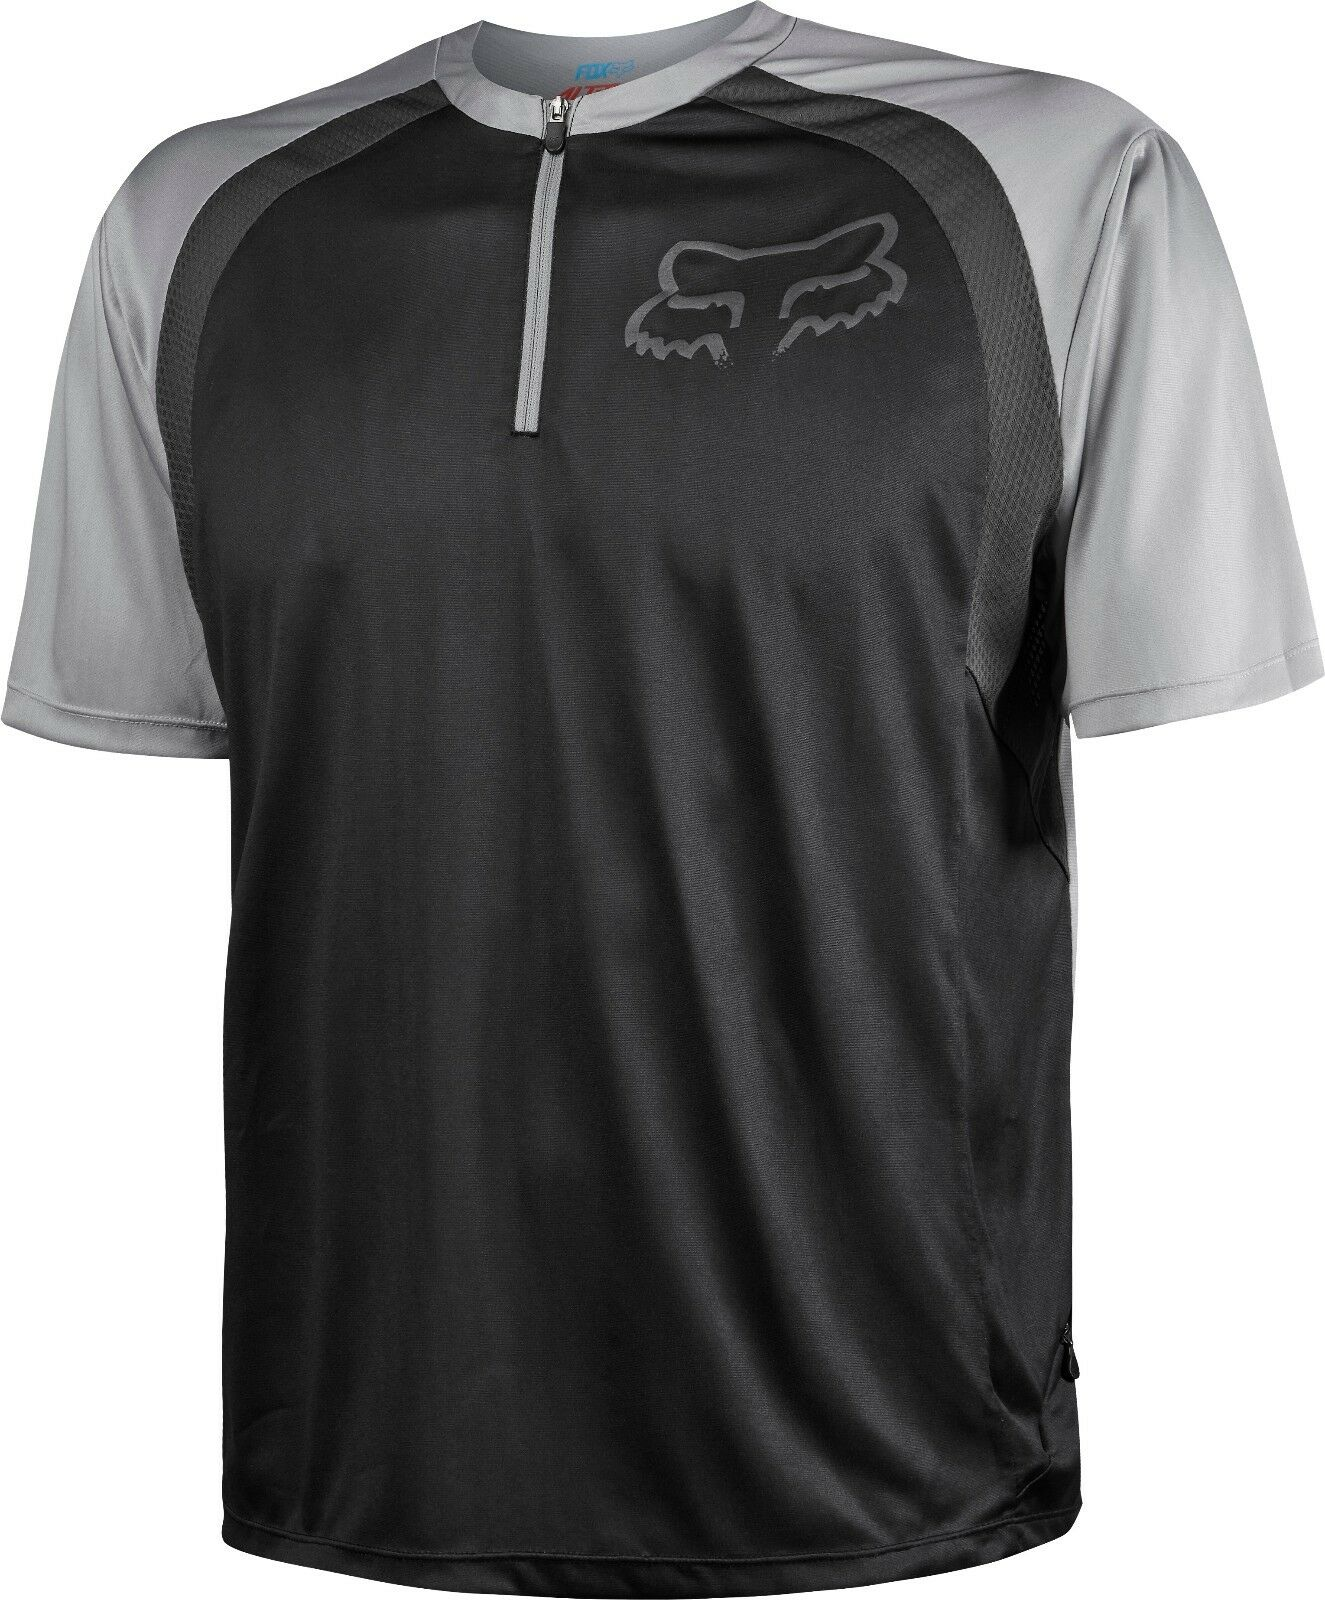 Fox Racing Altitude  s s Jersey Grey  lightning delivery